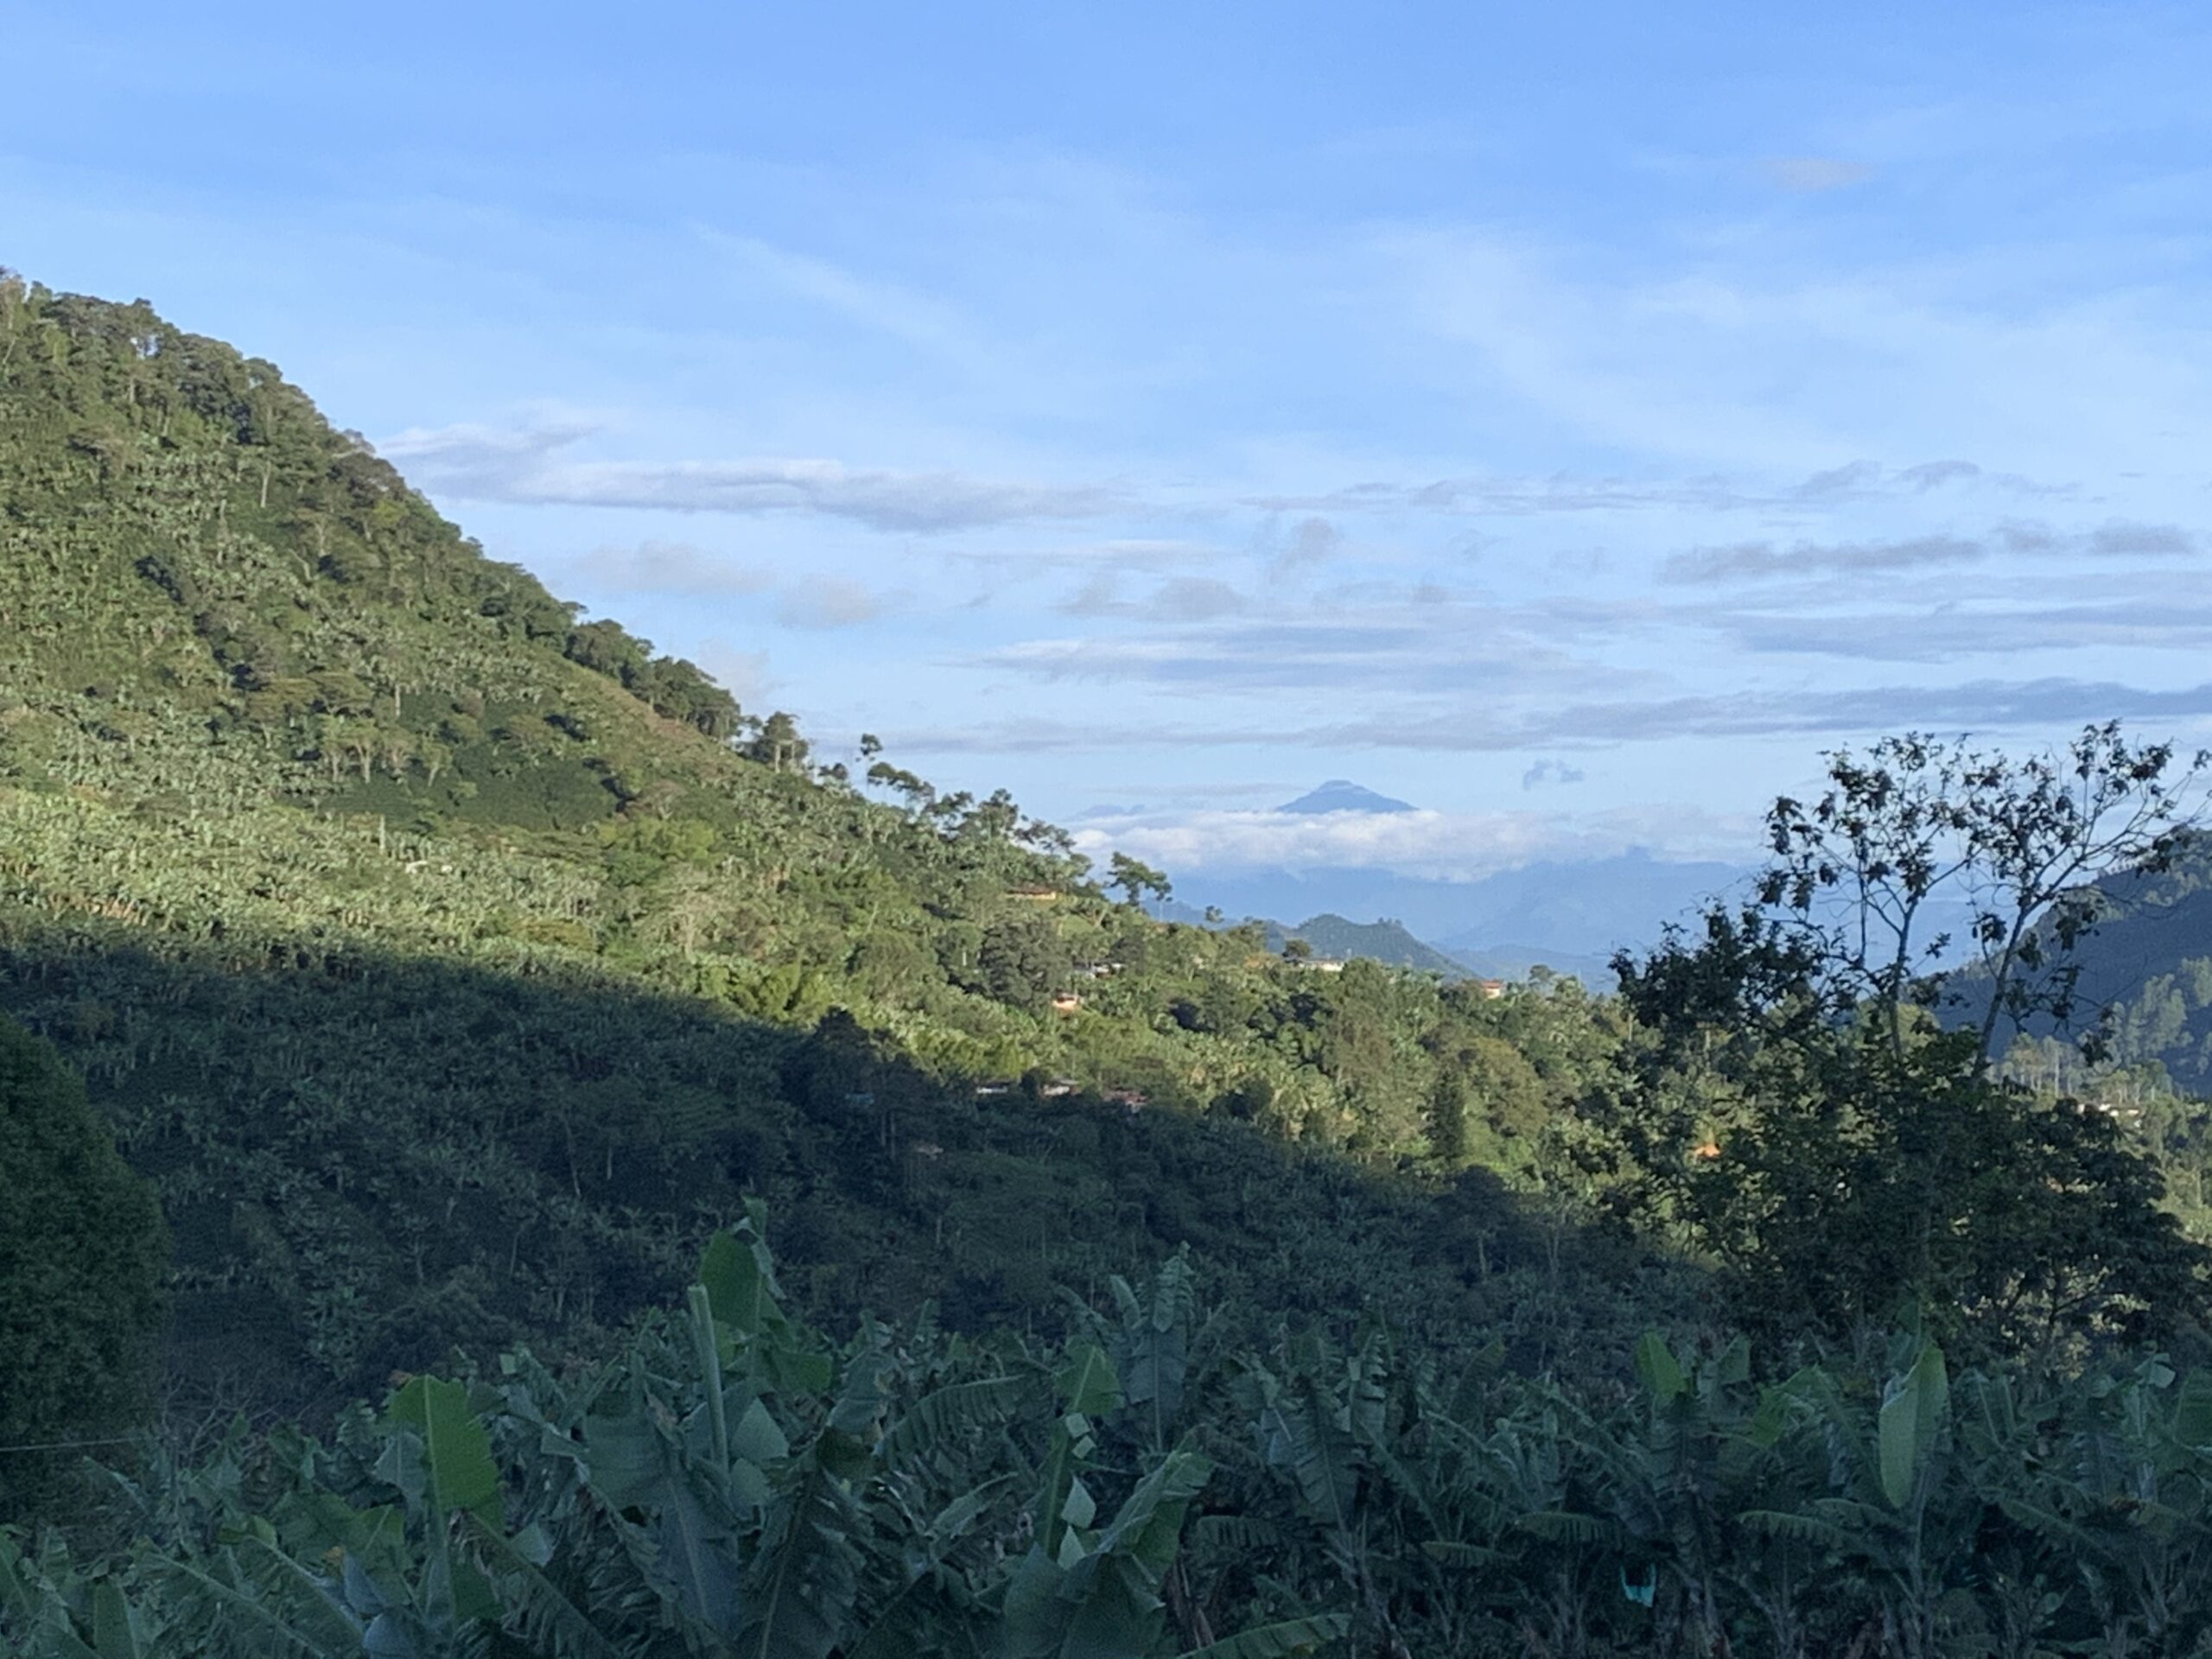 View across the coffee farm and nearby farms to Finca Mariposa